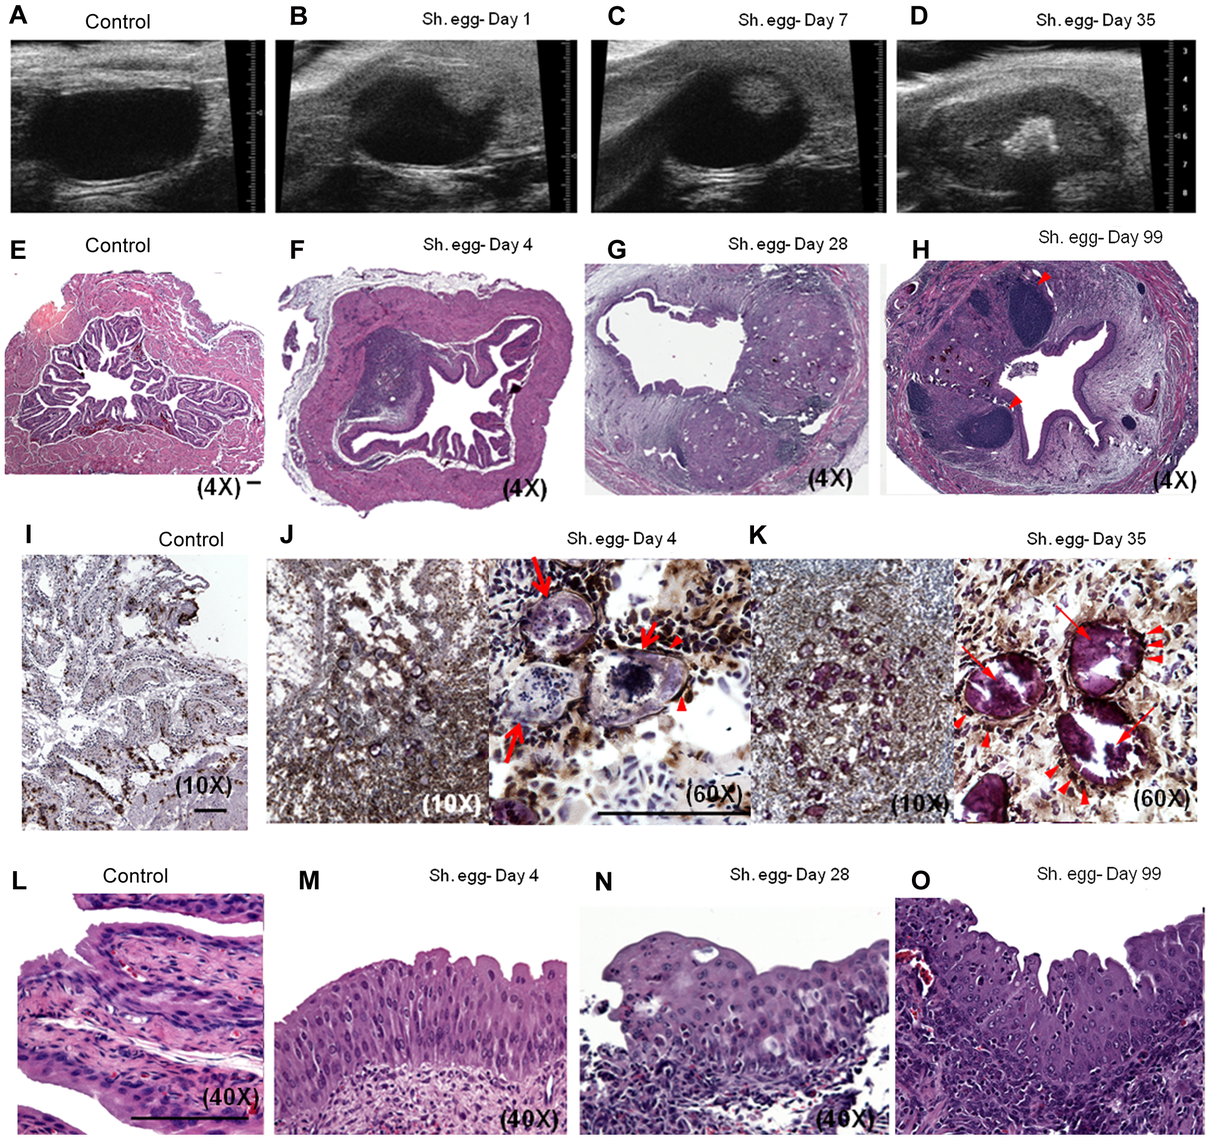 Bladder wall injection of <i>S. haematobium</i> eggs results in synchronous granuloma formation.